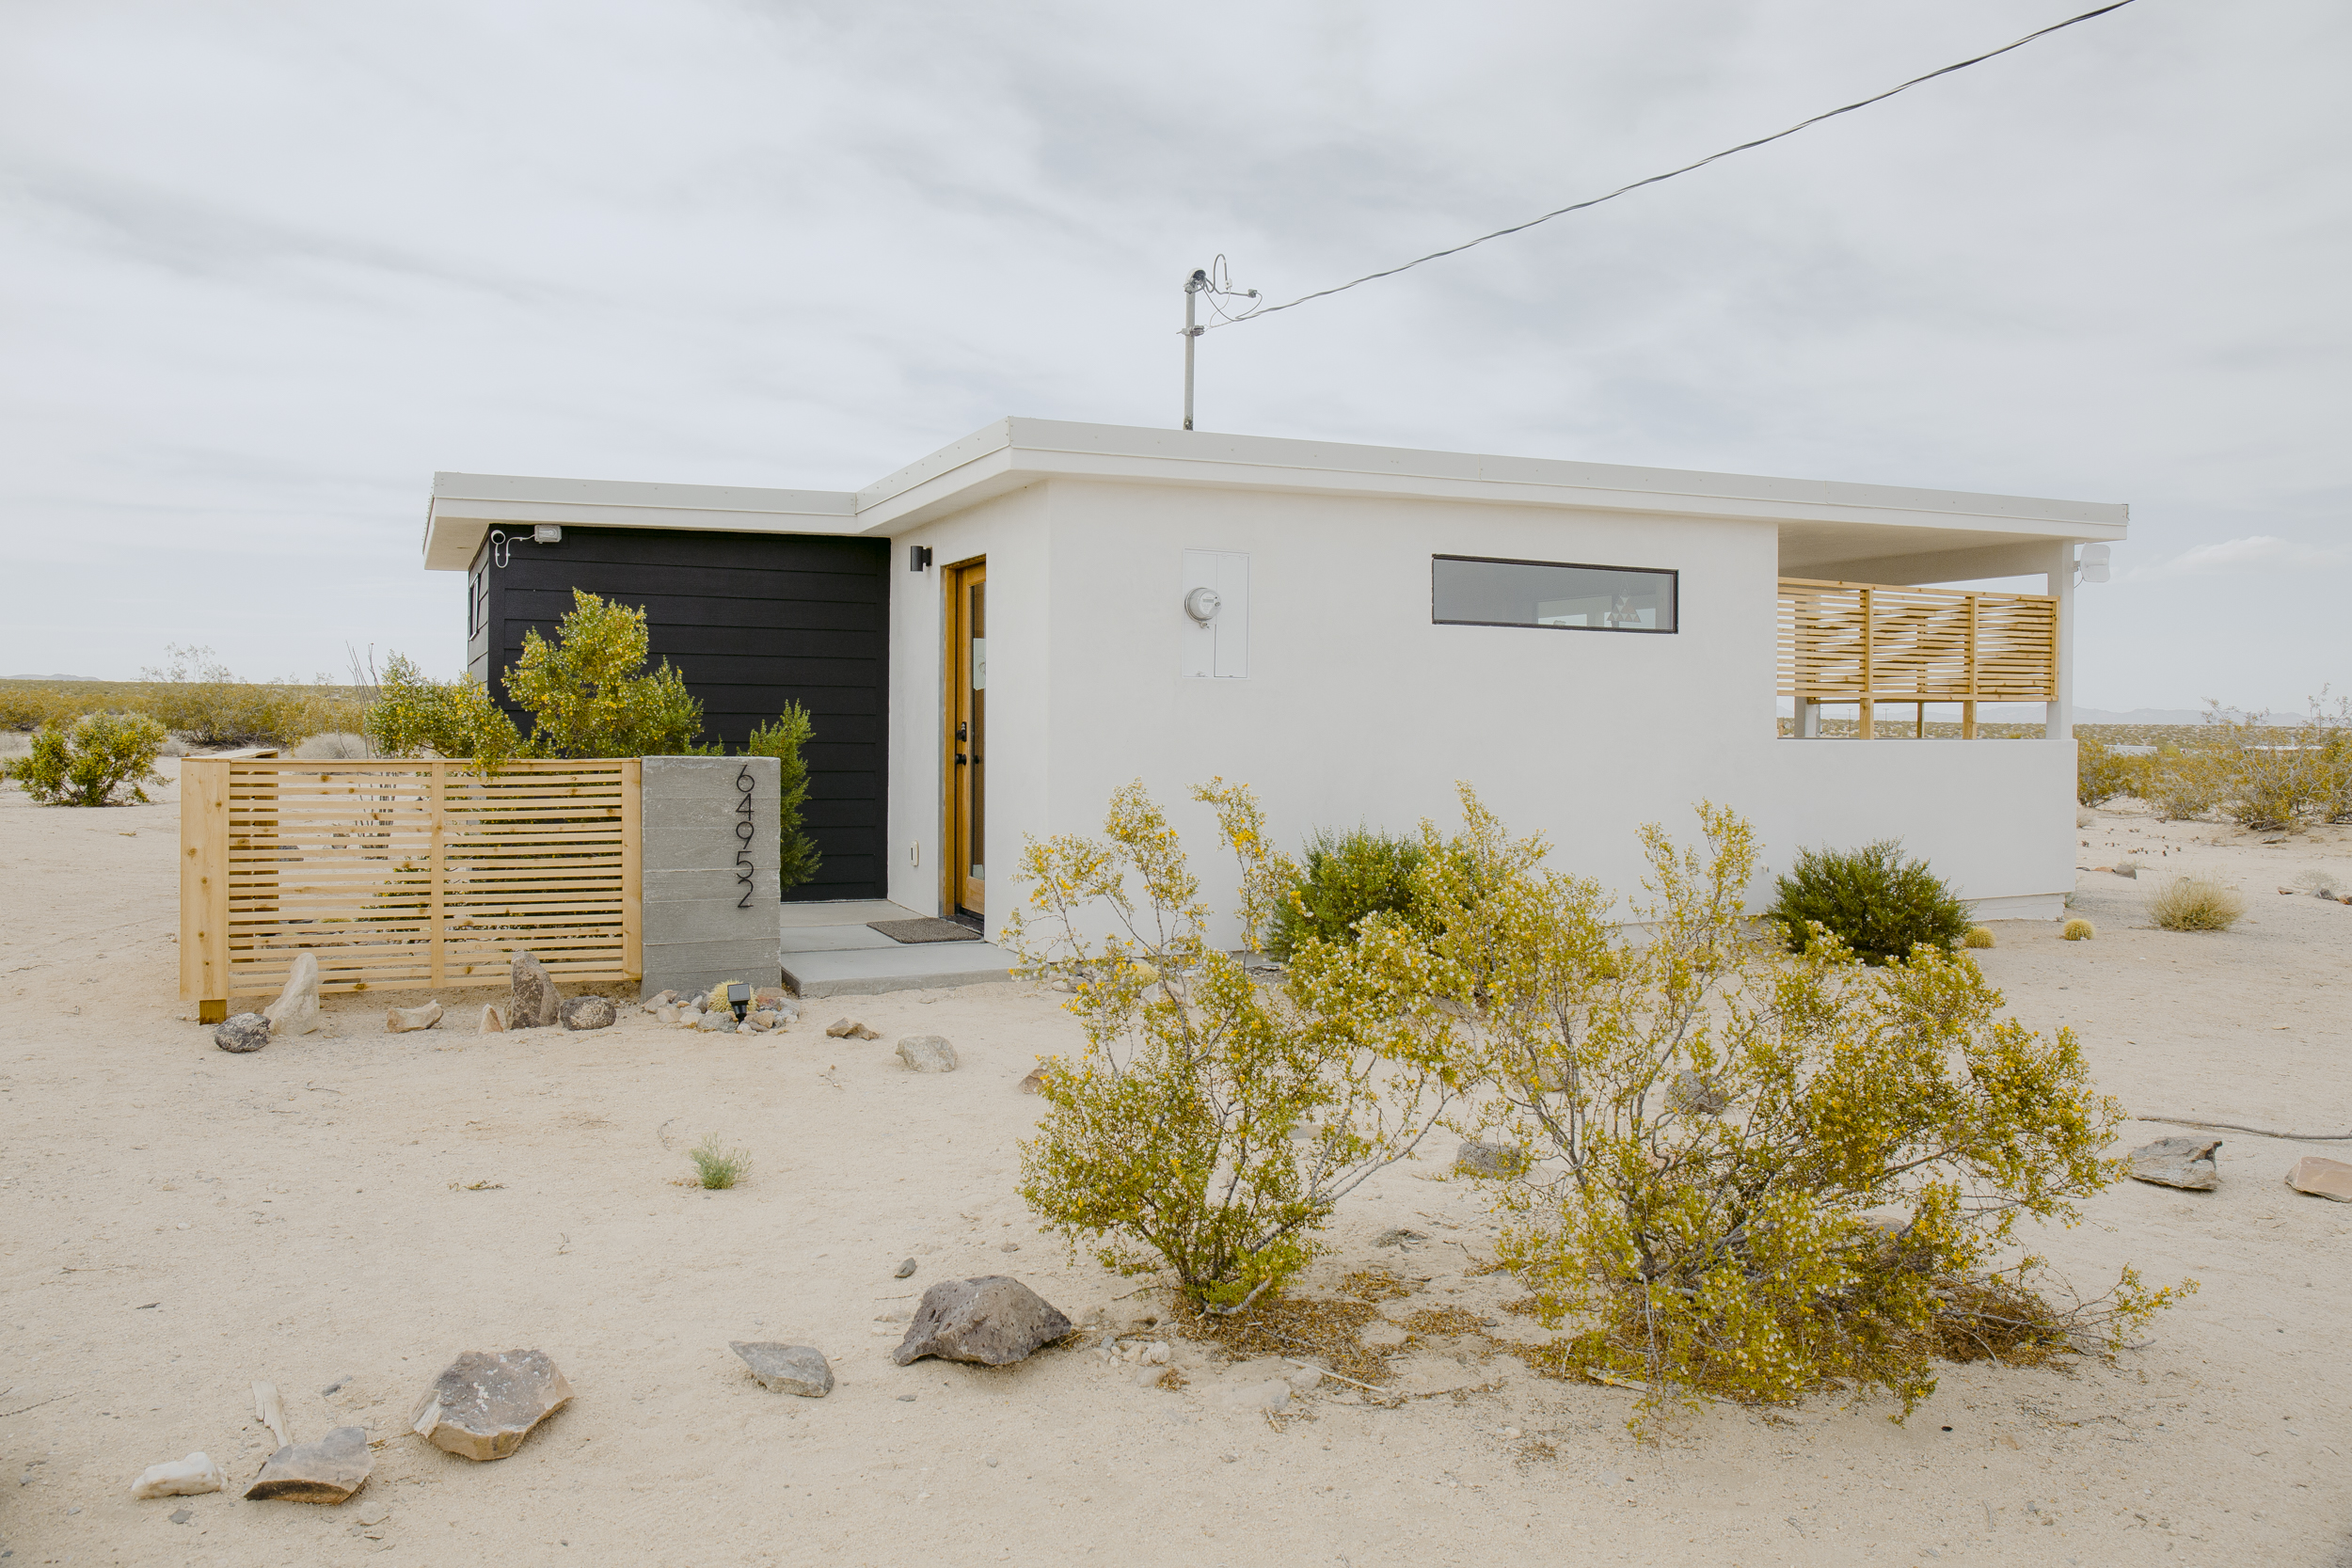 The Shack Attack  Airbnb in Joshua Tree